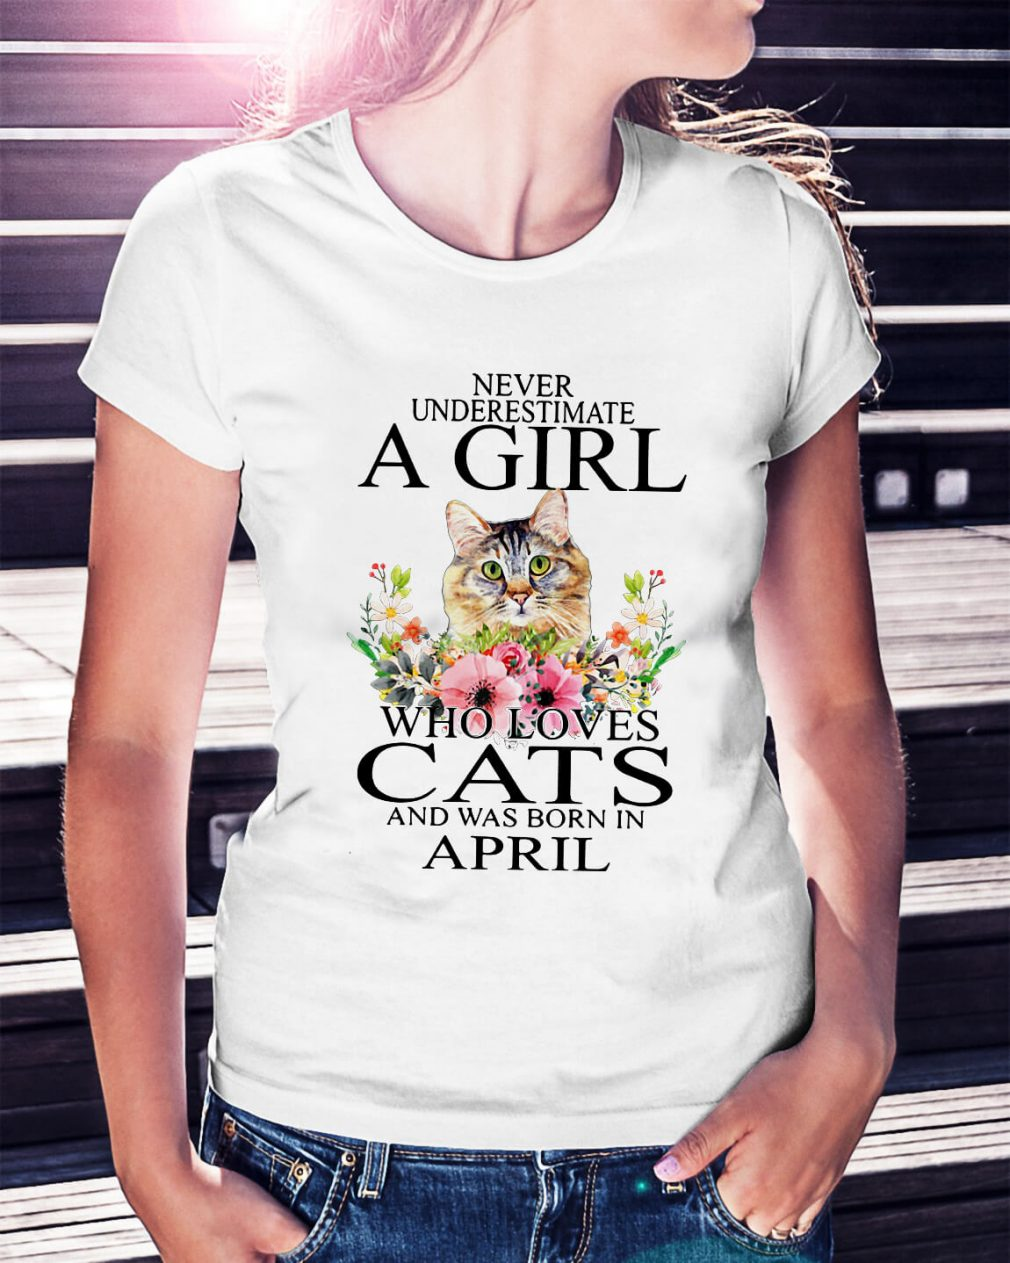 Never underestimate a girl who loves cats and was born in April shirt